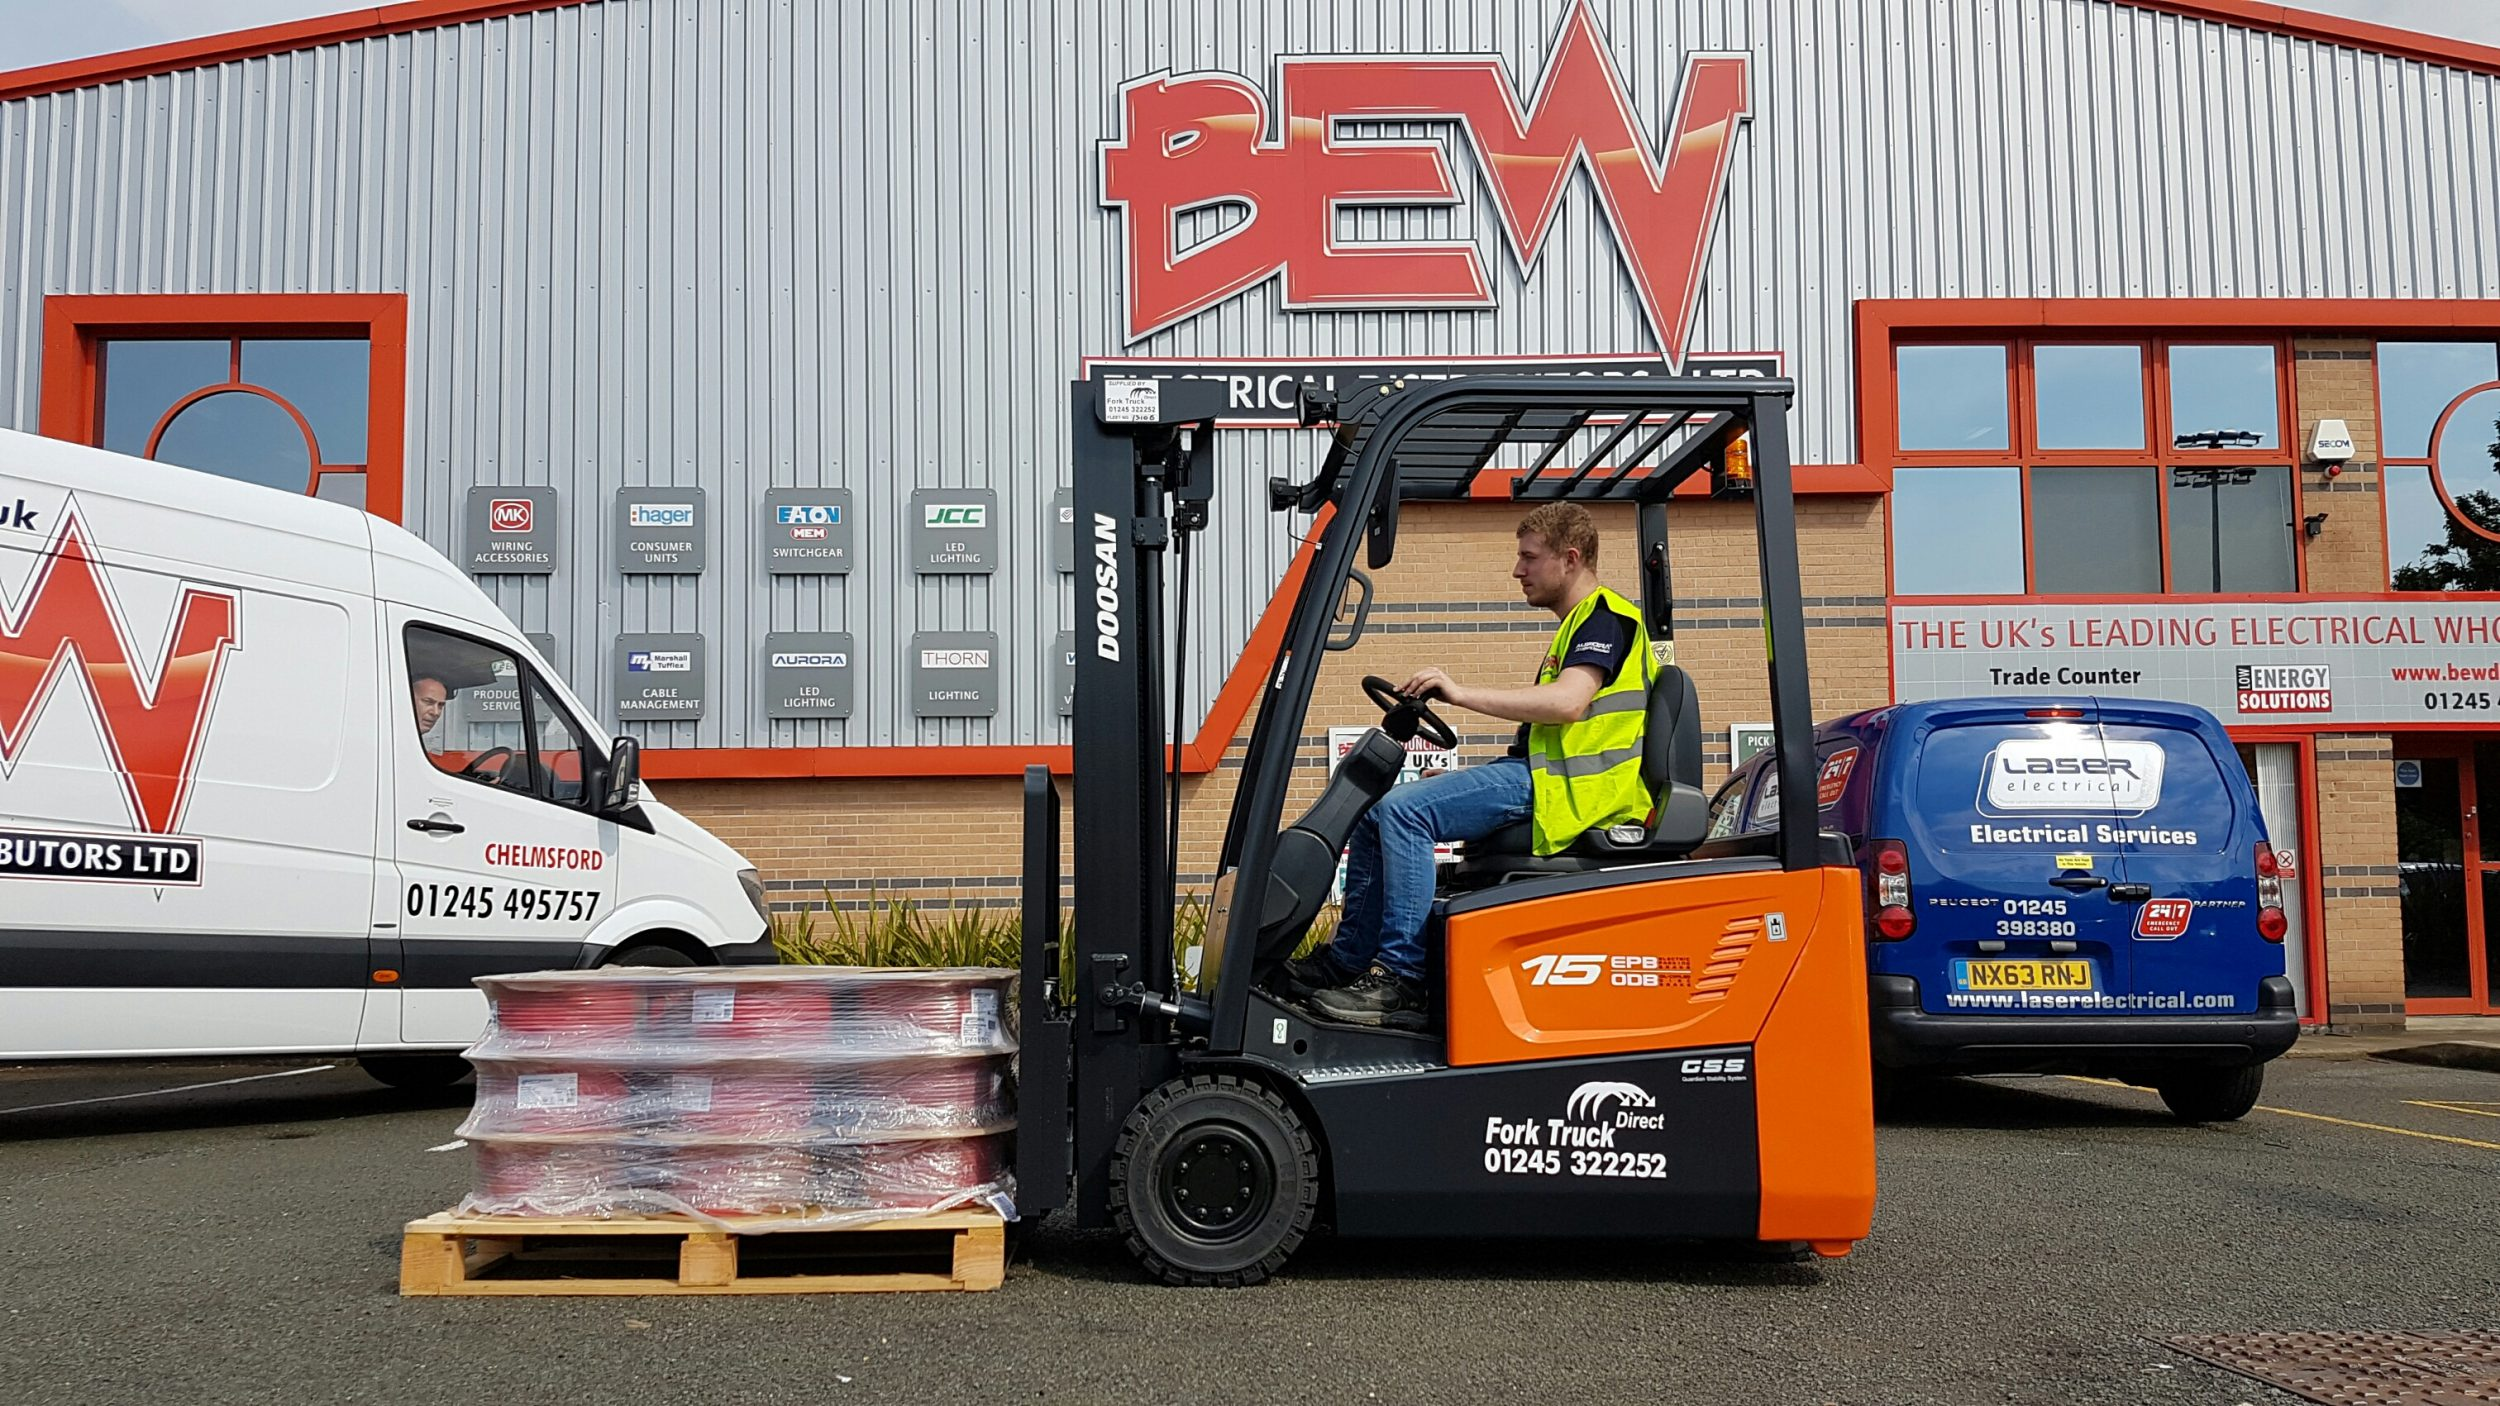 bew-electrical-distributor